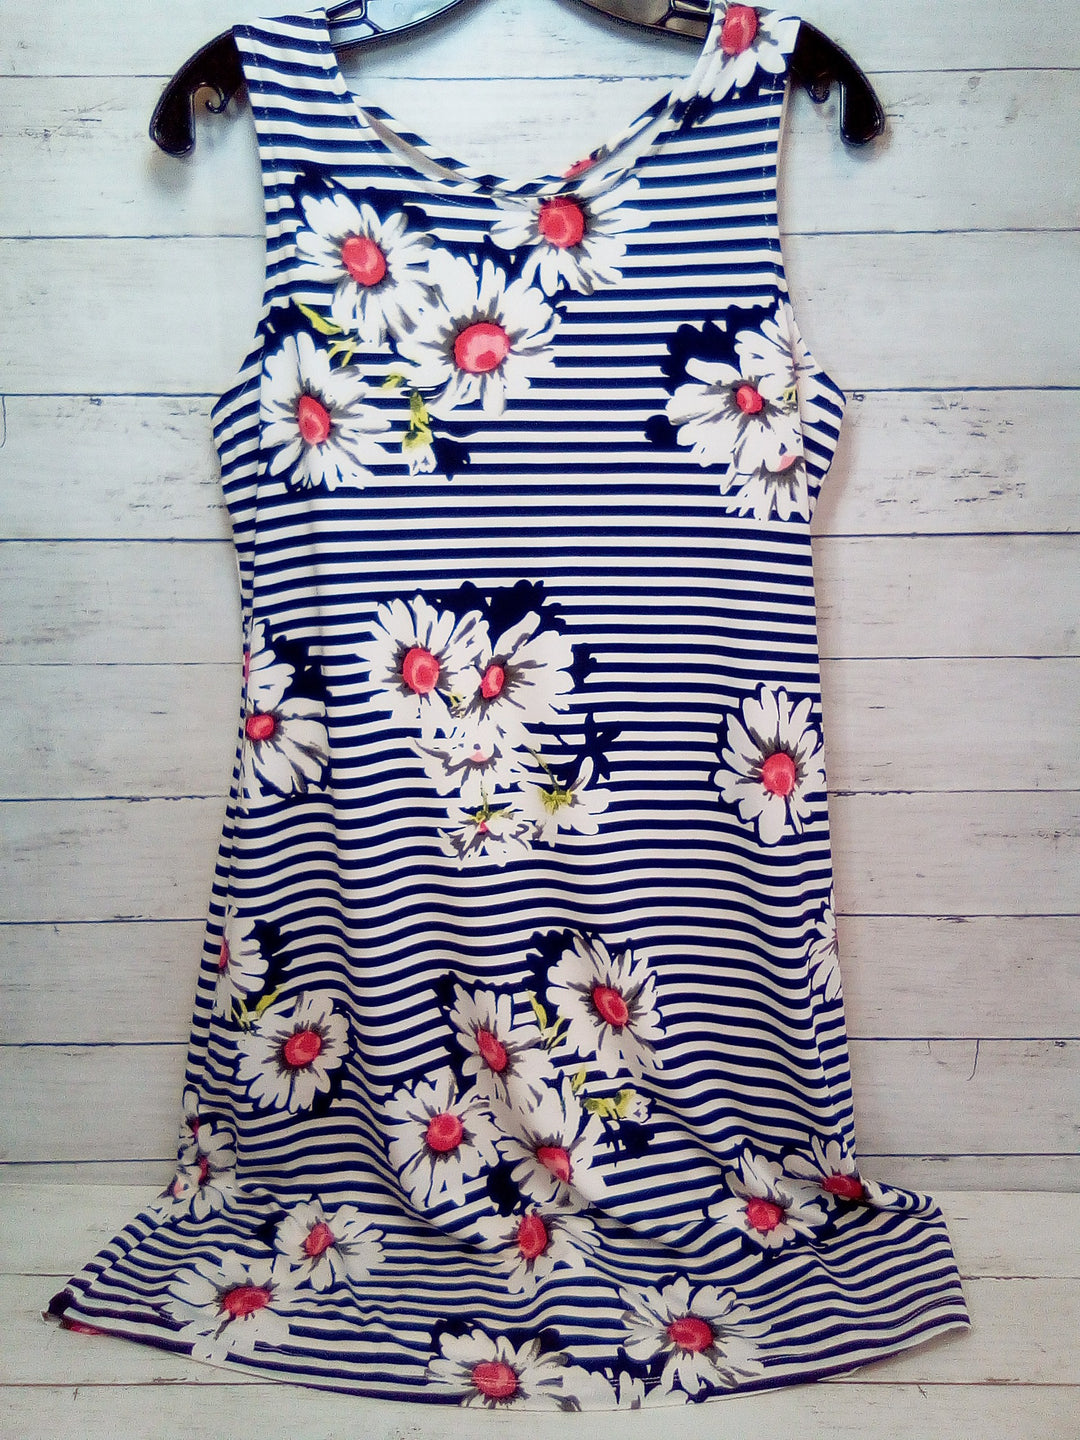 Primary Photo - BRAND: RONNIE NICOLE <BR>STYLE: DRESS SHORT SLEEVELESS <BR>COLOR: STRIPED <BR>SIZE: M <BR>OTHER INFO: BLUE/WHITE W/FLOWERS <BR>SKU: 216-21638-66078